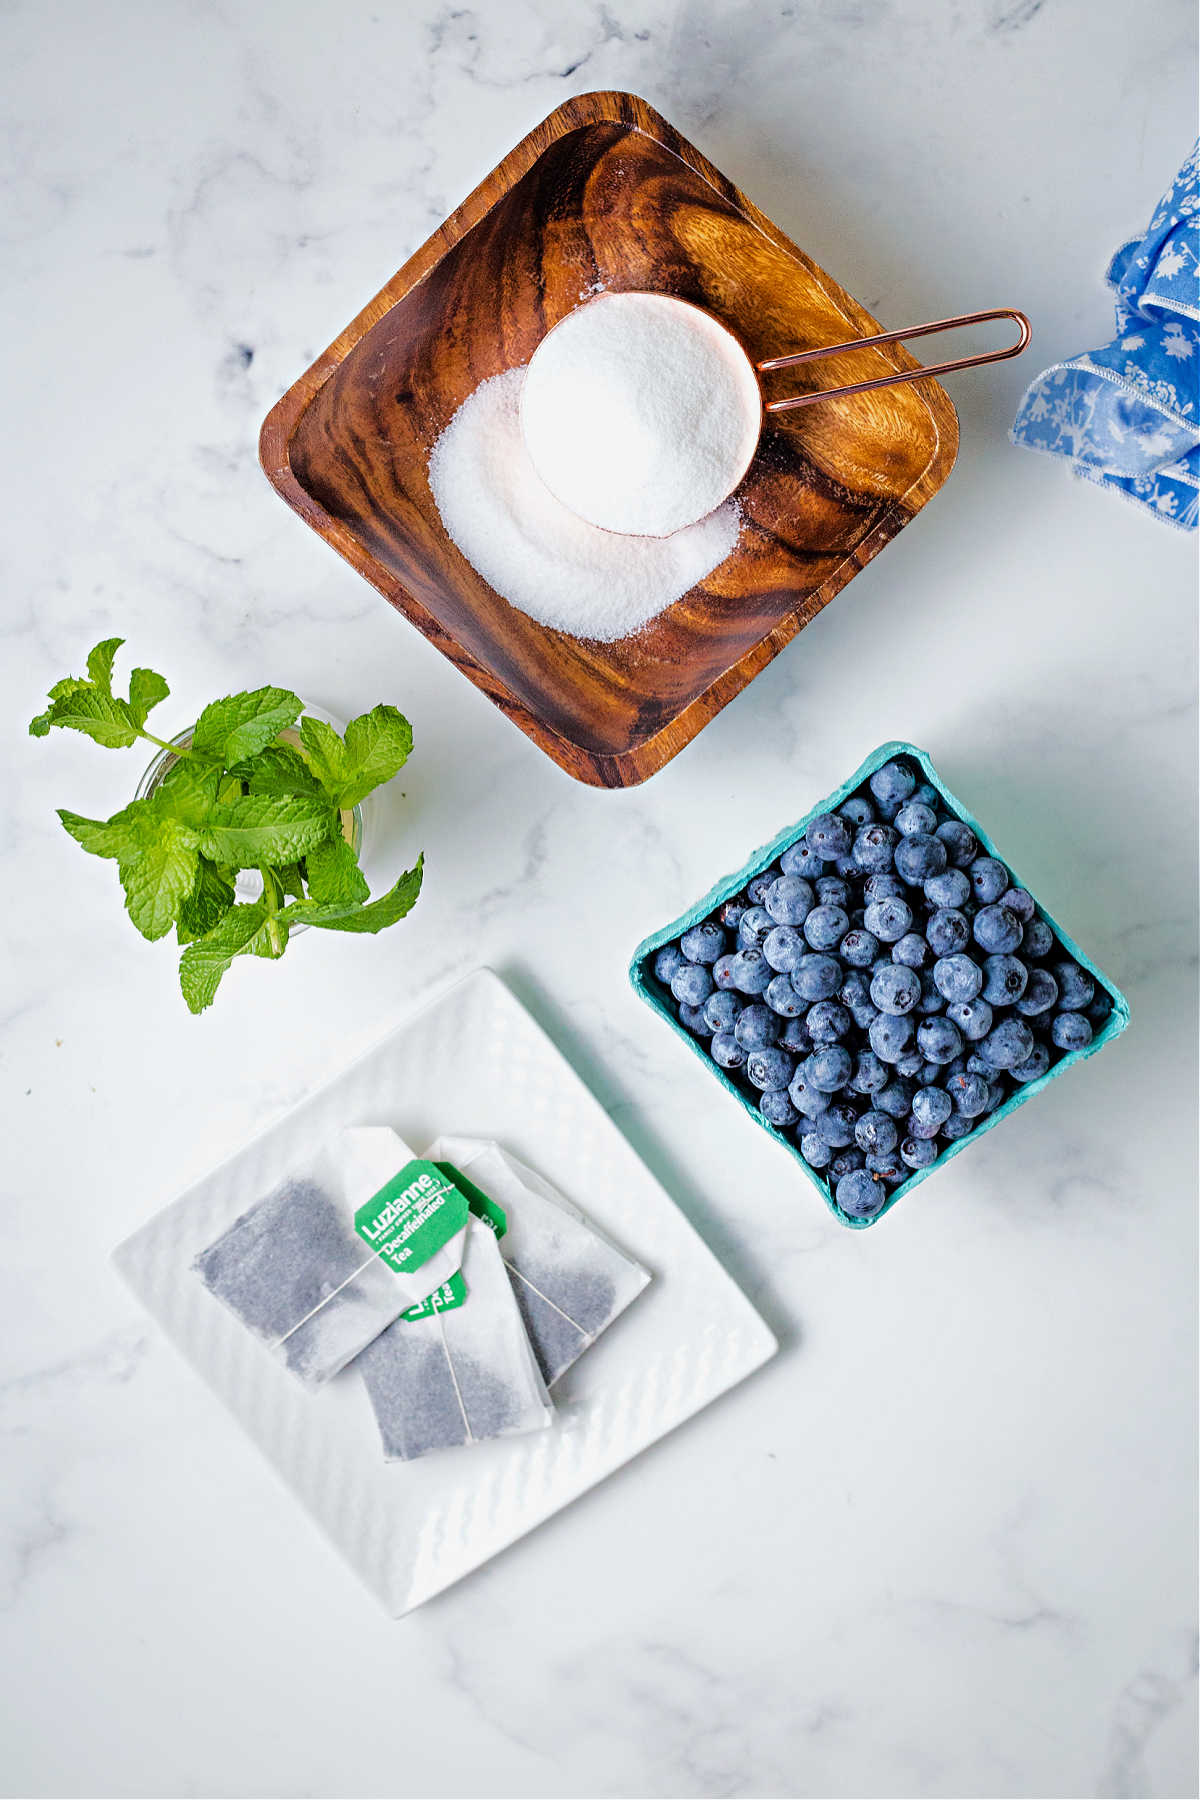 ingredients for blueberry tea on a table: blueberries, sugar, tea bags, and mint sprigs.